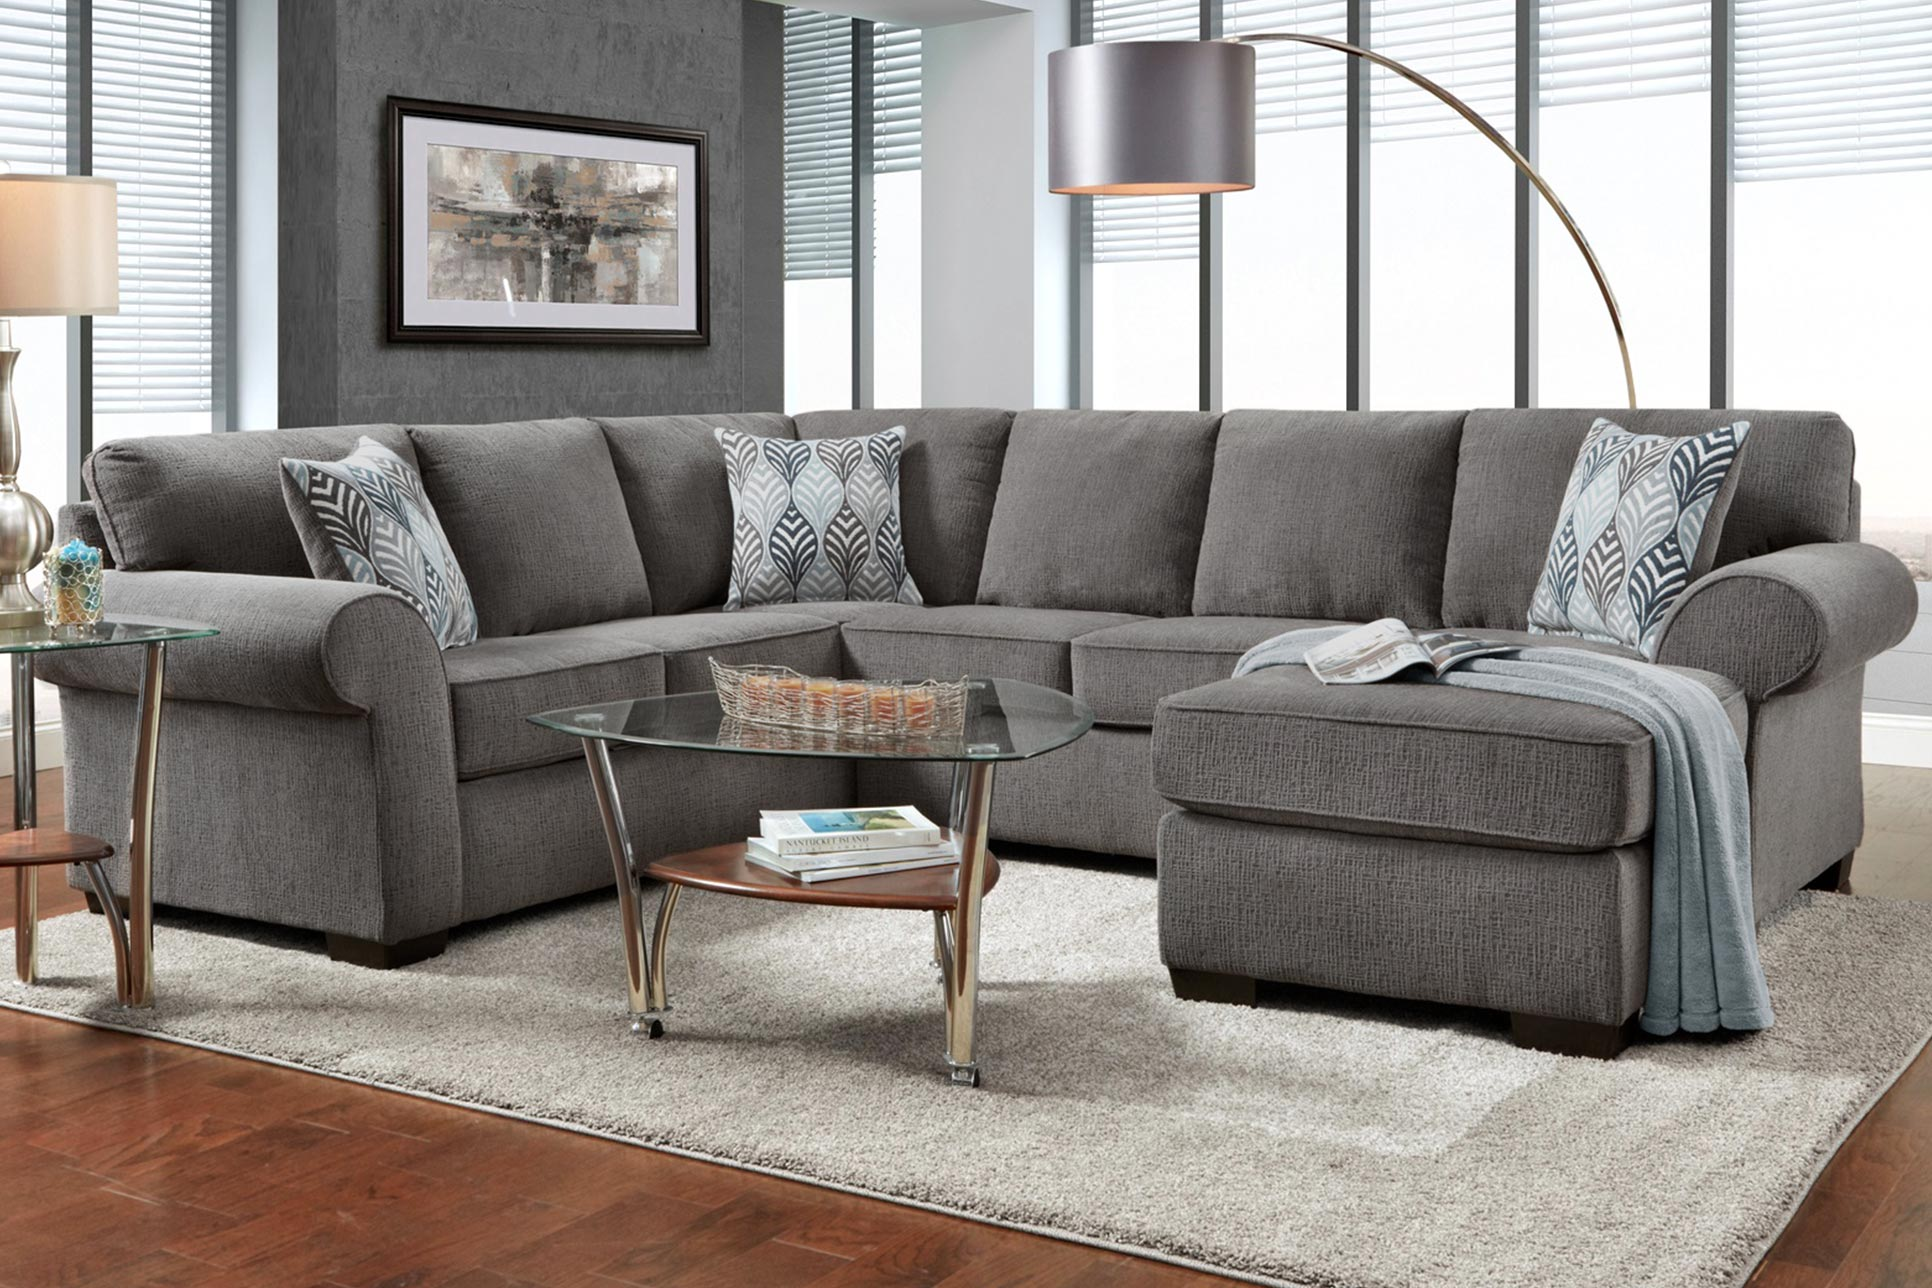 Living Room Furniture Designs Catalogue. Stationary Sectional Living Room  Furniture Designs Catalogue